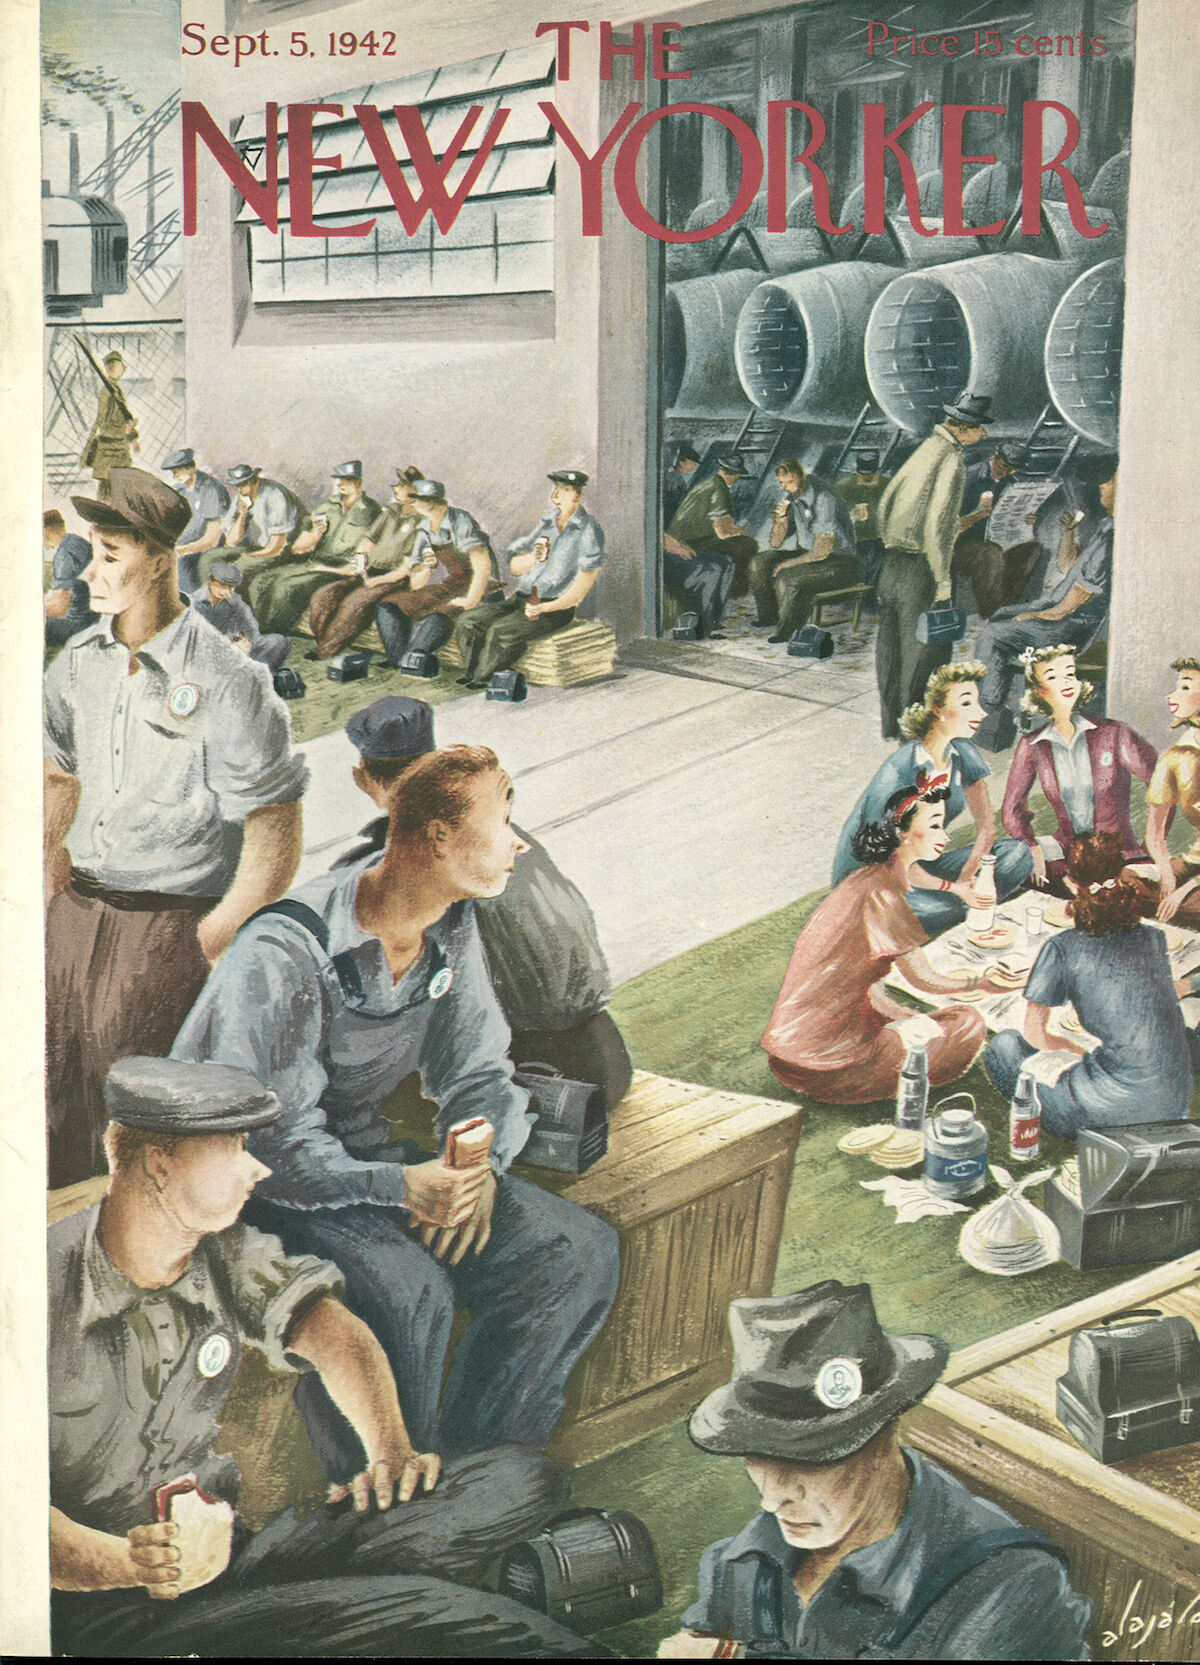 """September 5, 1942,"" by Constantin Aladjalov. Courtesy of The New Yorker. Used with permission."